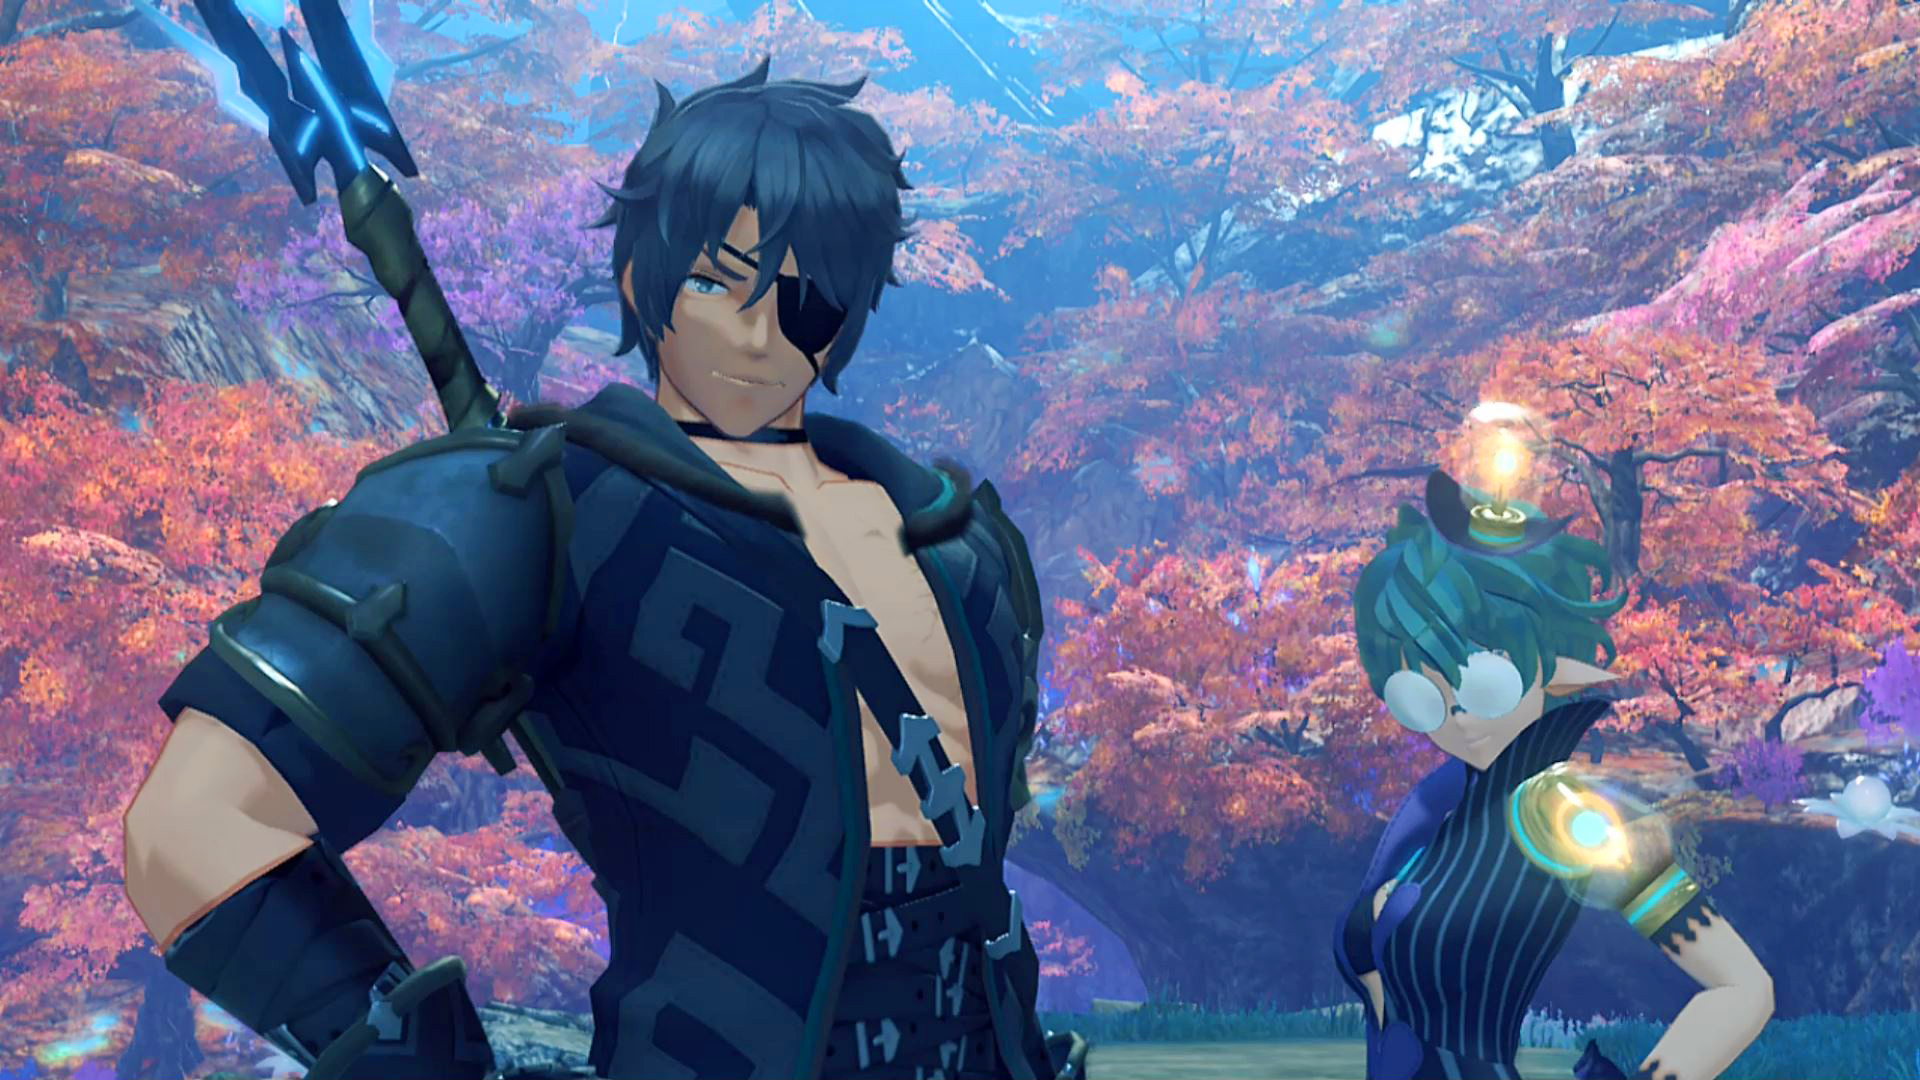 Xenoblade Chronicles 2 February Update Will Add A New Game Plus Mode